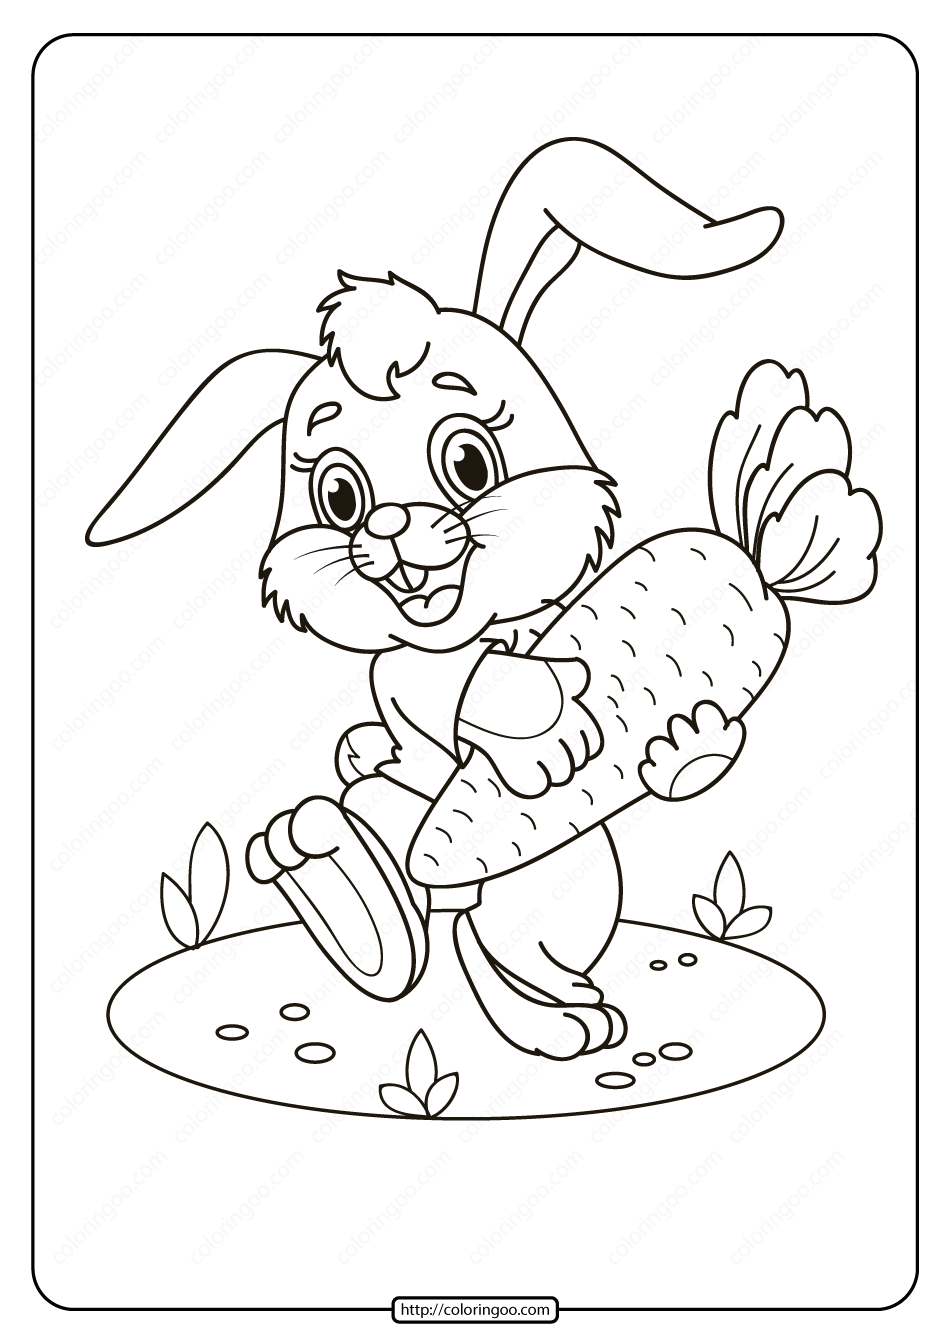 Printable Rabbit With Carrot Pdf Coloring Page Coloring Pages Cool Coloring Pages Coloring Books